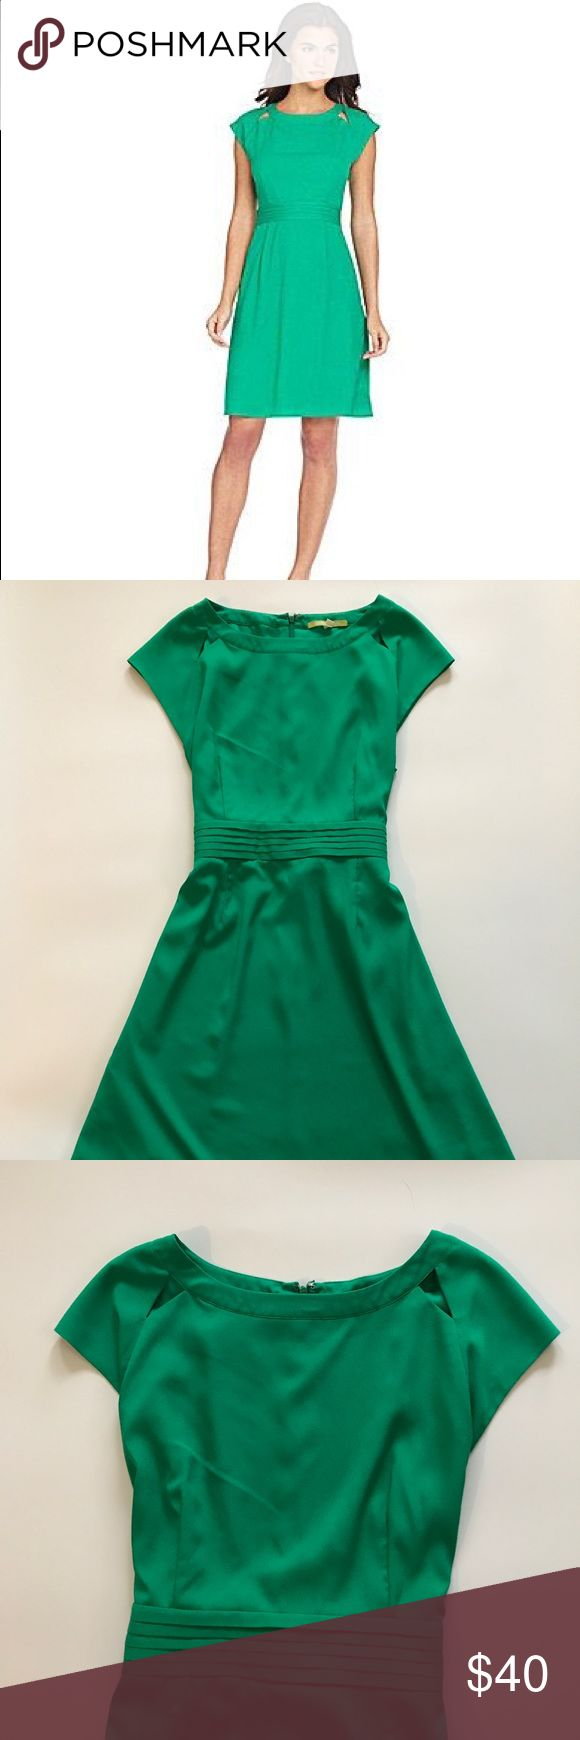 "Gianni Bini Mona cut out dress Gorgeous Gianni Bini green Mona cut out dress in EUC. Measures 36"" in length, no holes or stains. Make an offer or bundle and save! Gianni Bini Dresses Midi"